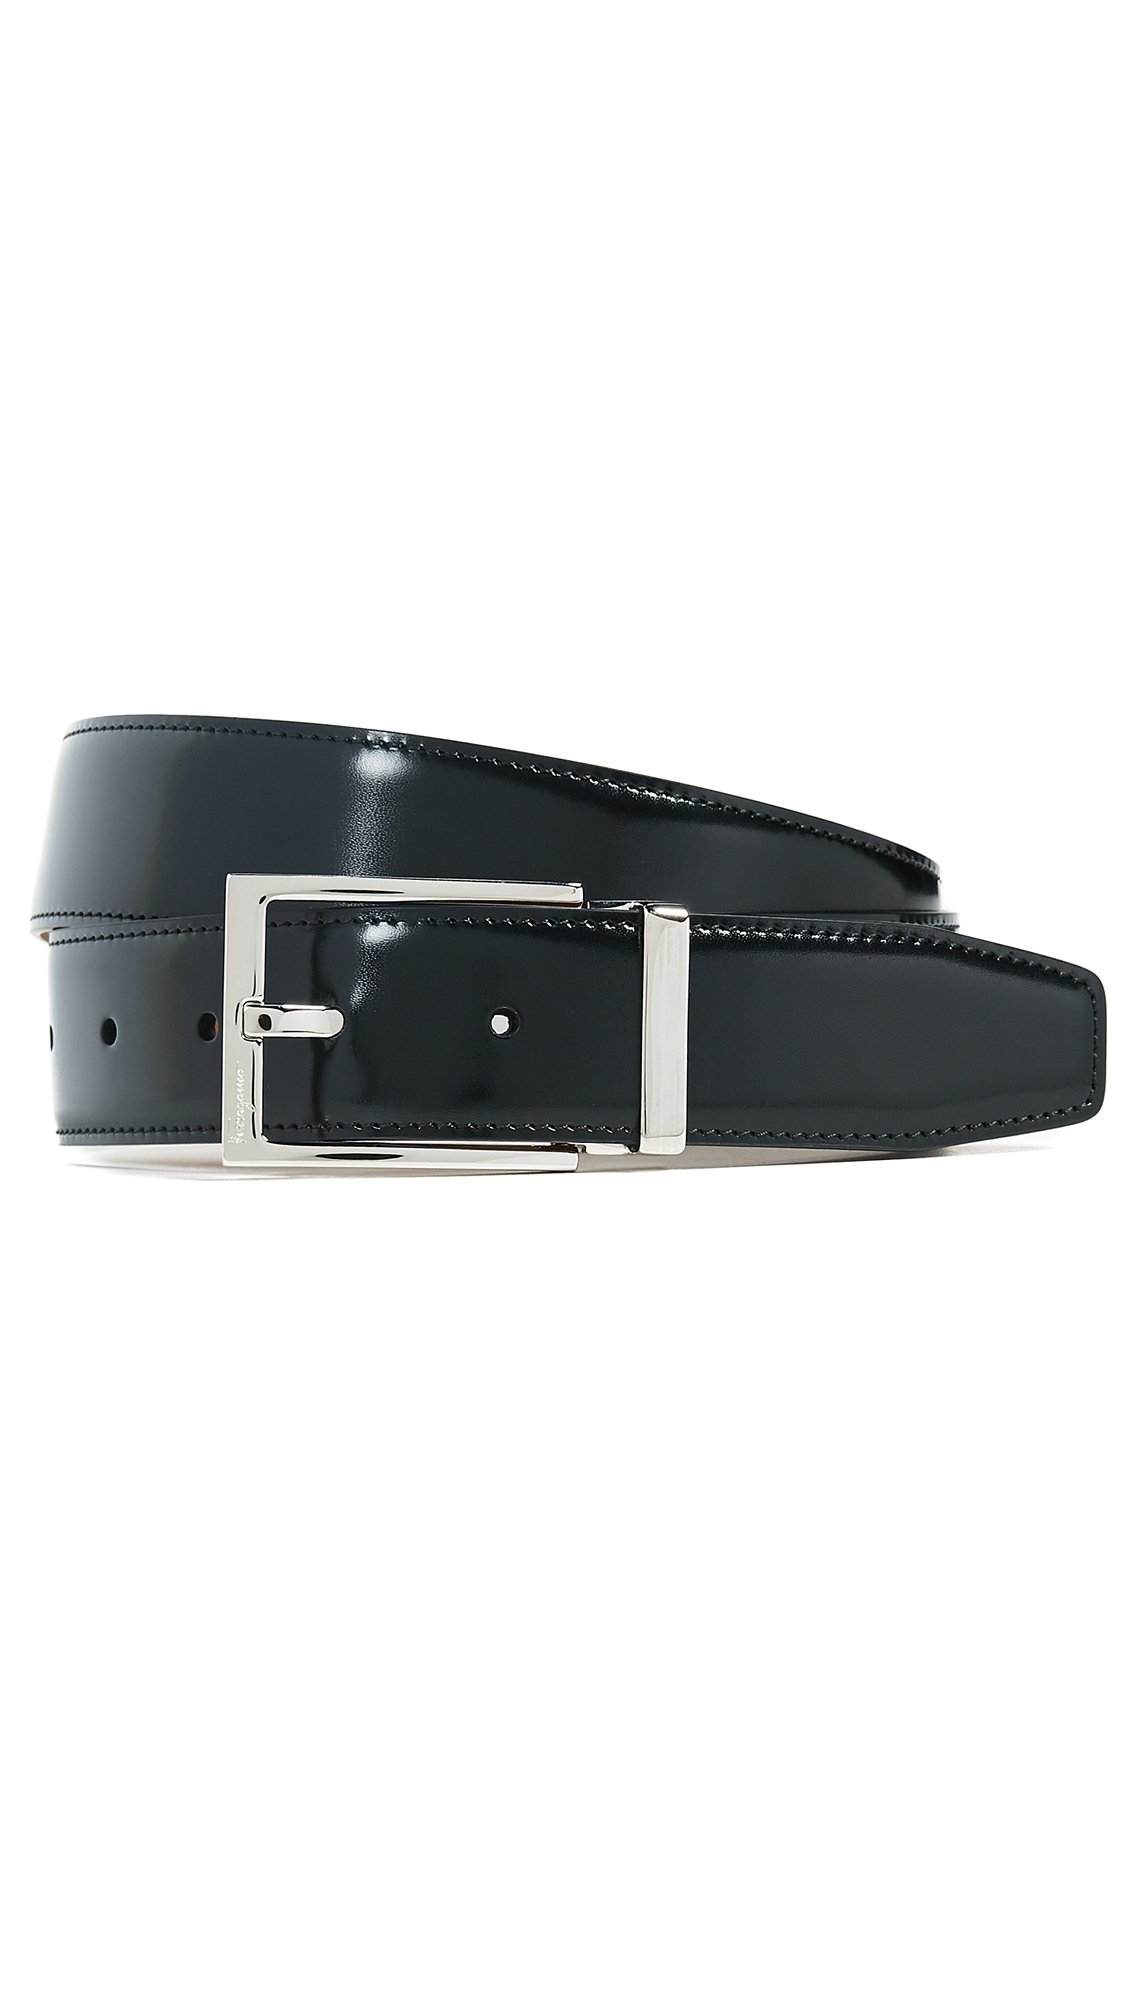 Salvatore Ferragamo Men's Adjustable & Reversible Belt, Black, 34